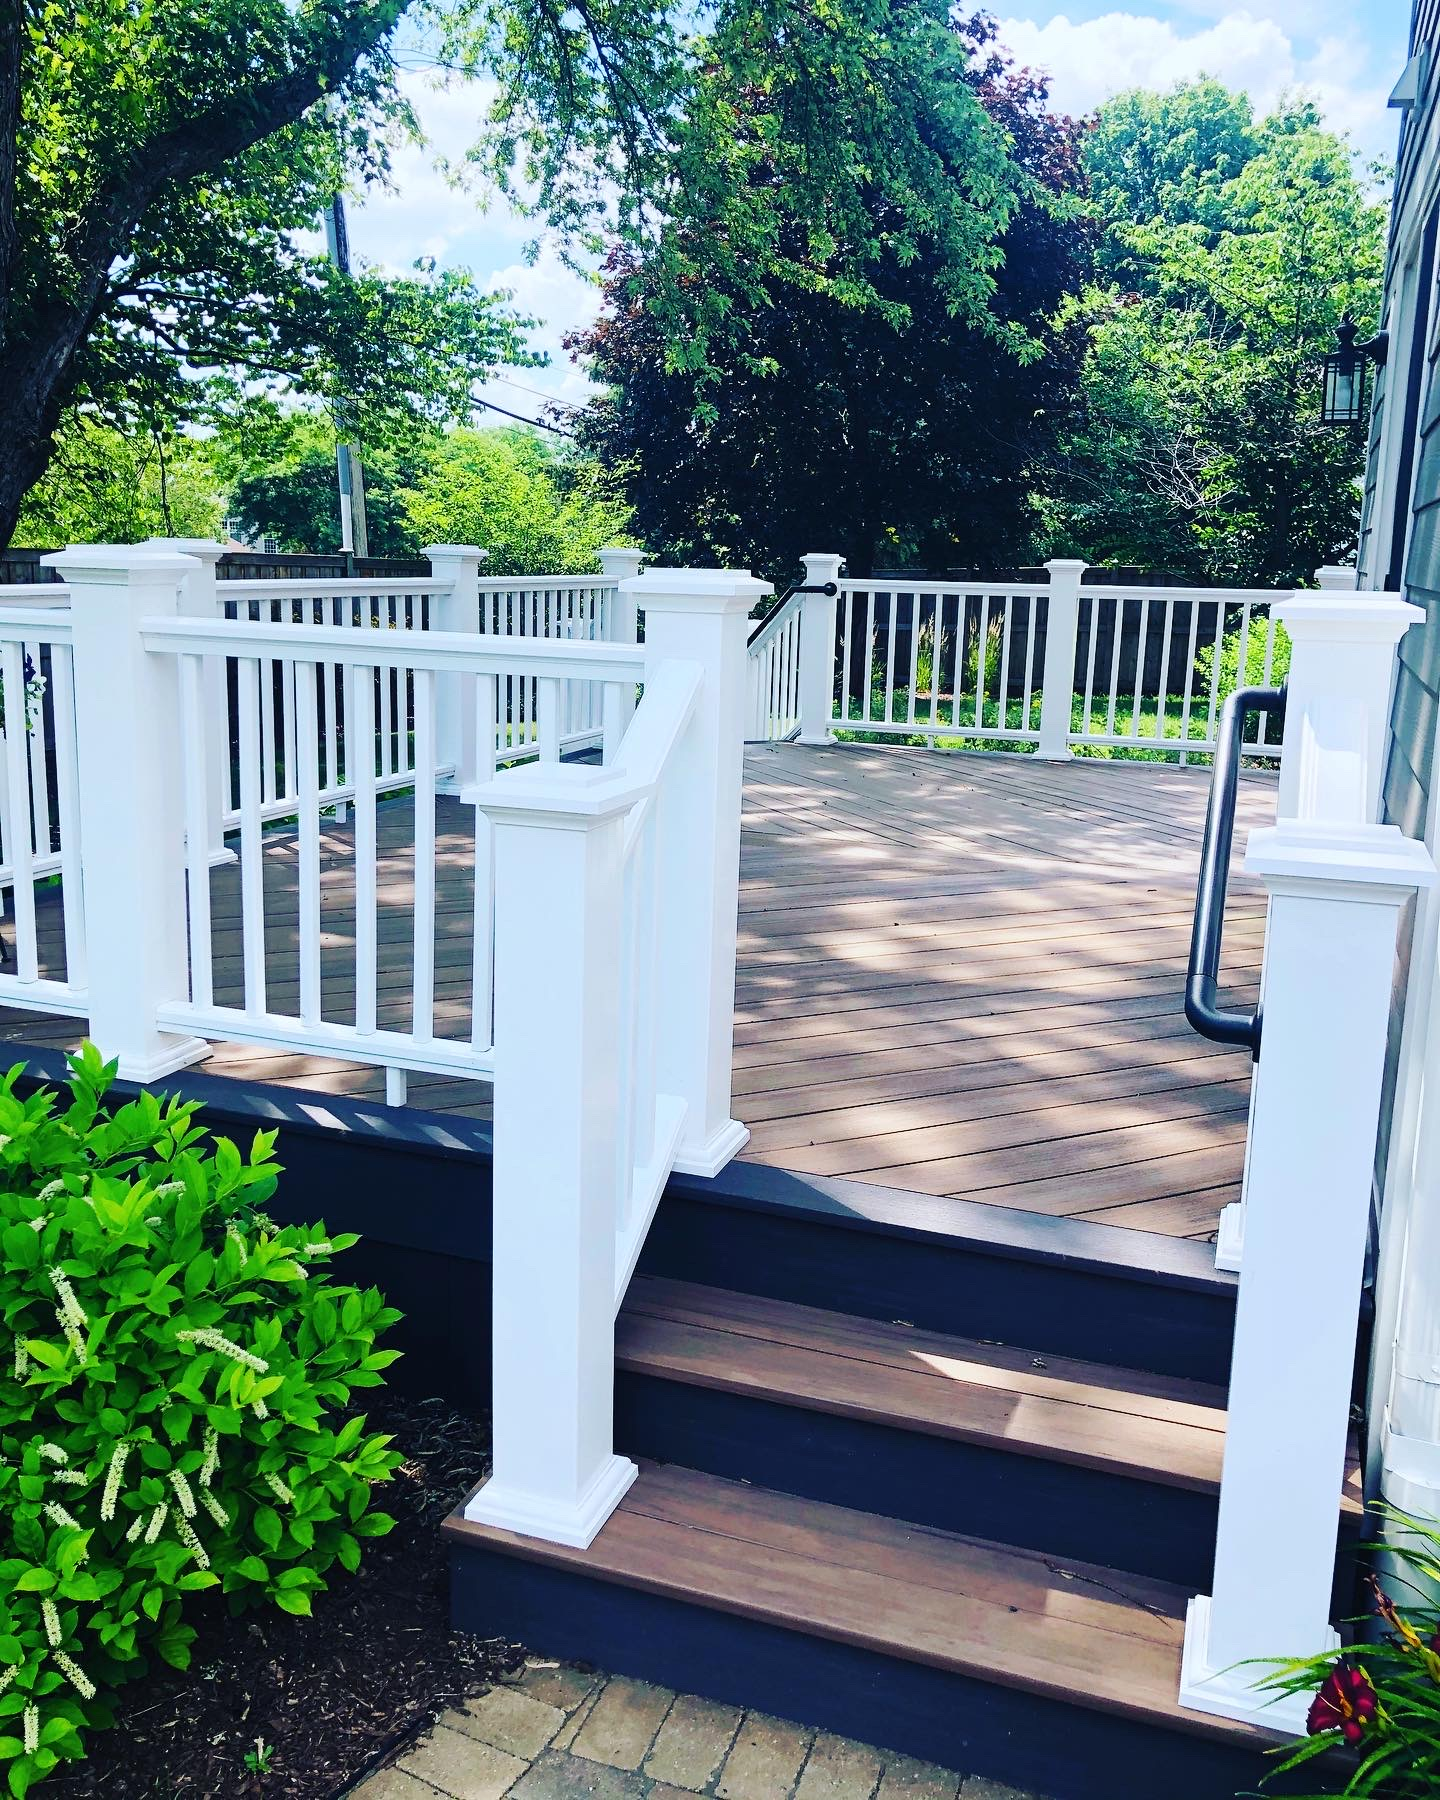 New TimberTech Deck & Railings